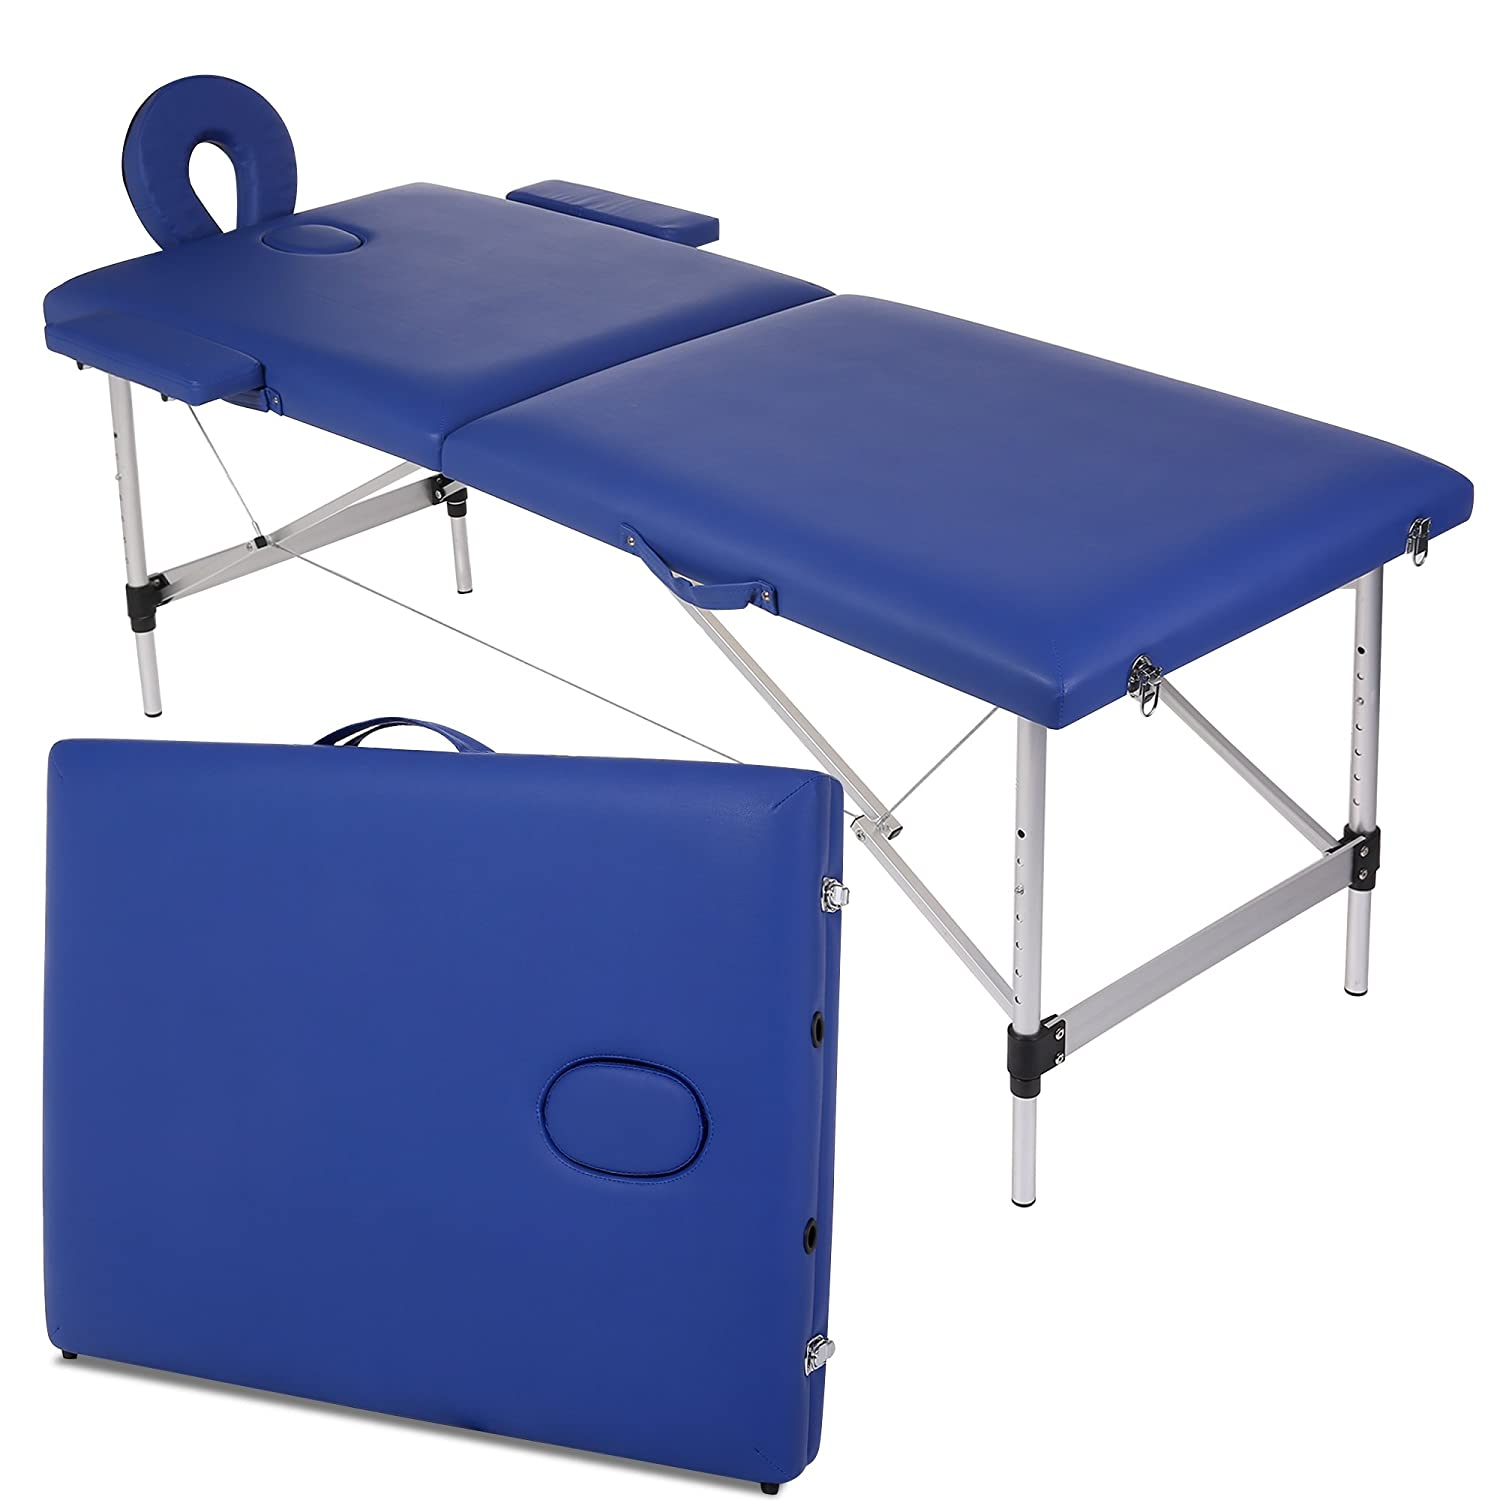 Amazon.com: Portable Massage Table Bed with Folding Lightweight Design & Carry Case: Kitchen & Dining